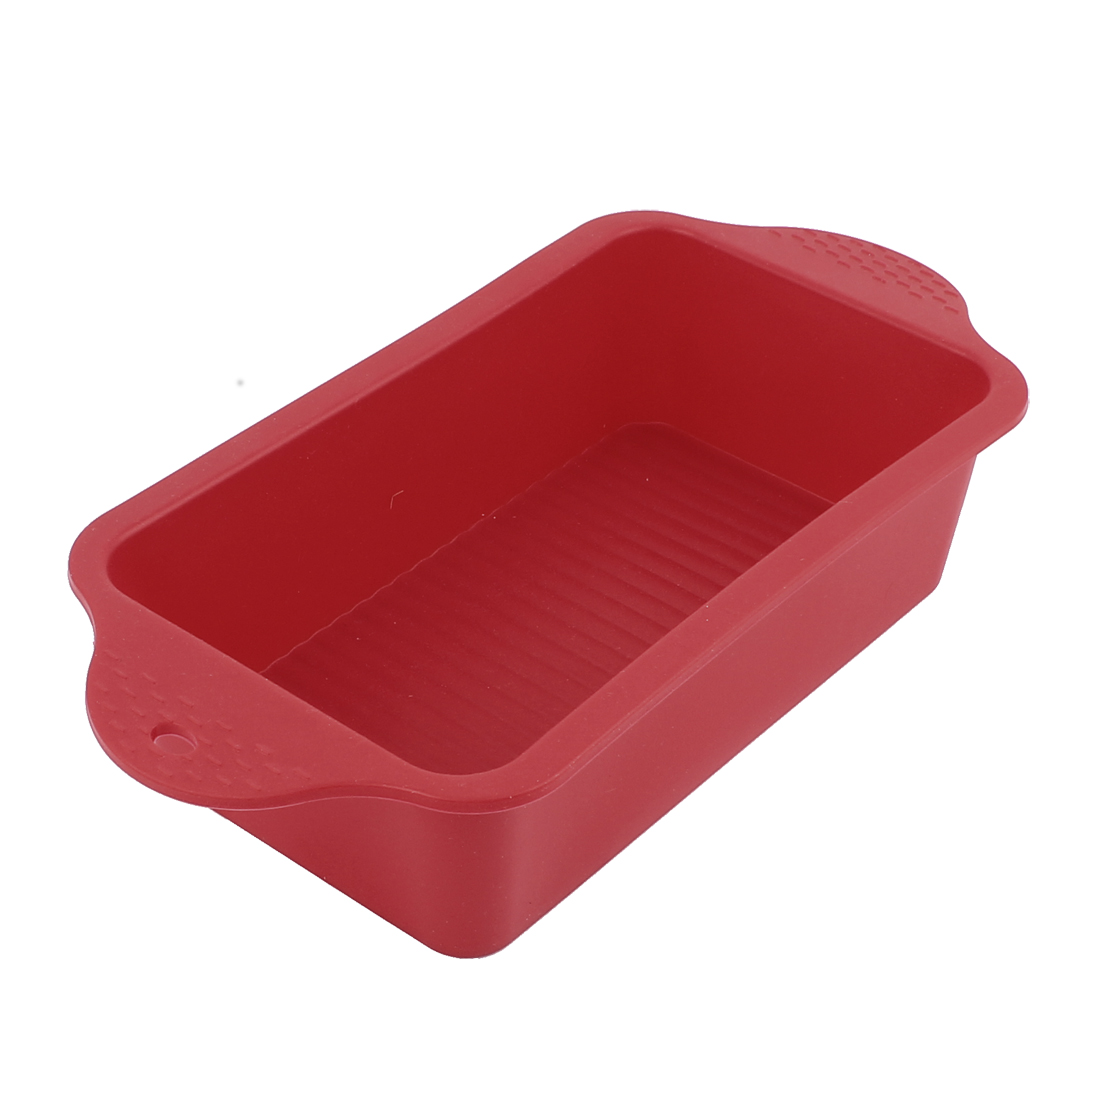 Silicone Loaf Bread Cake Toast Baking Mold Pan Red